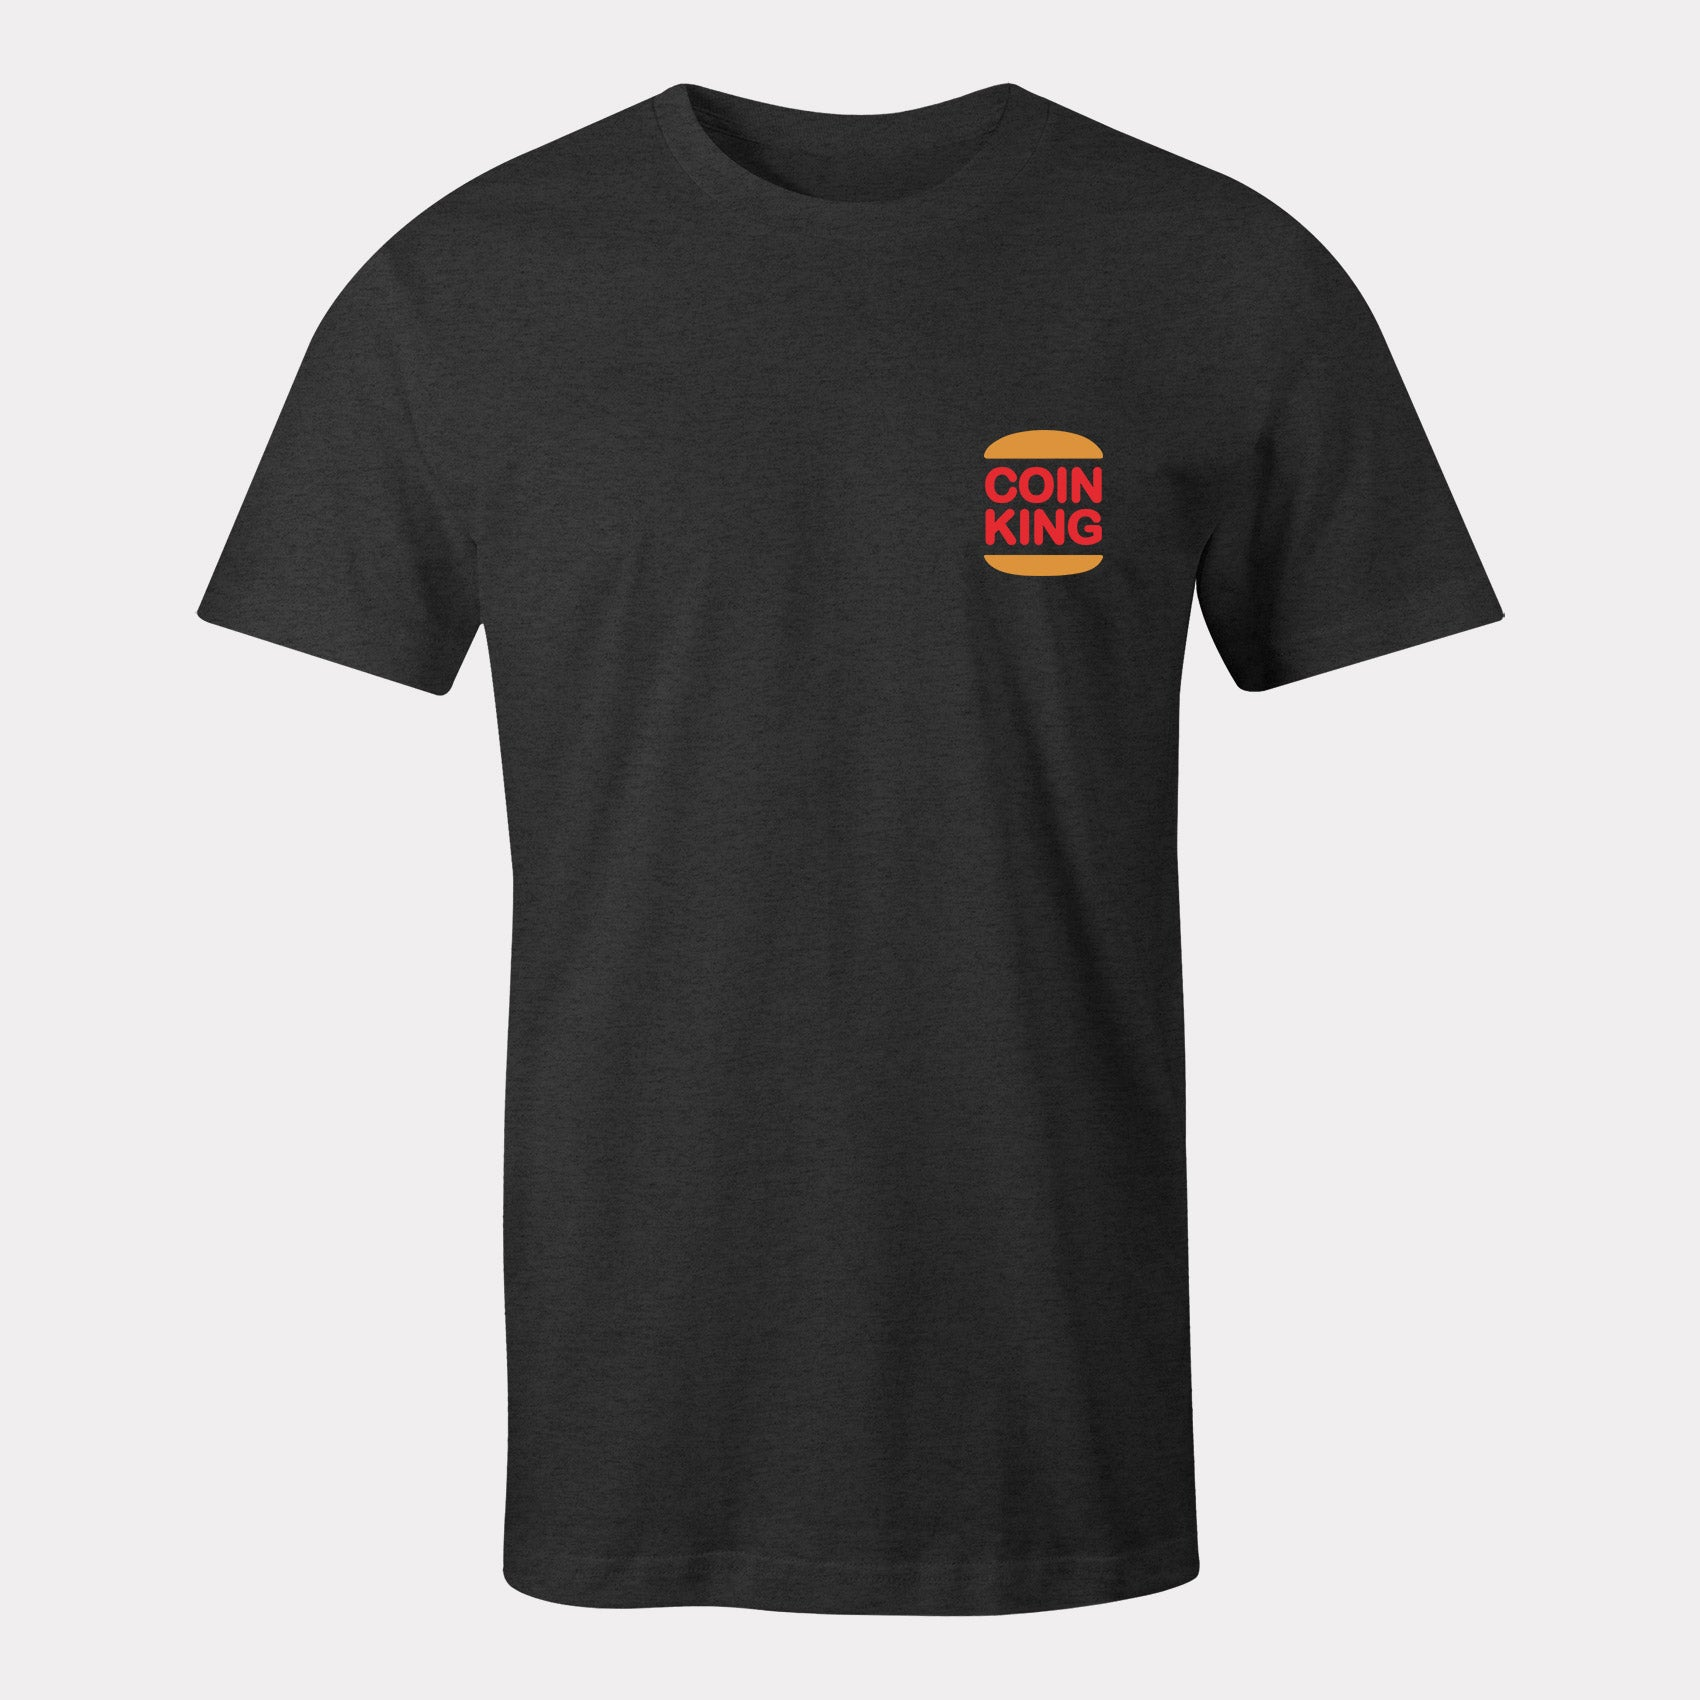 coin king t-shirt